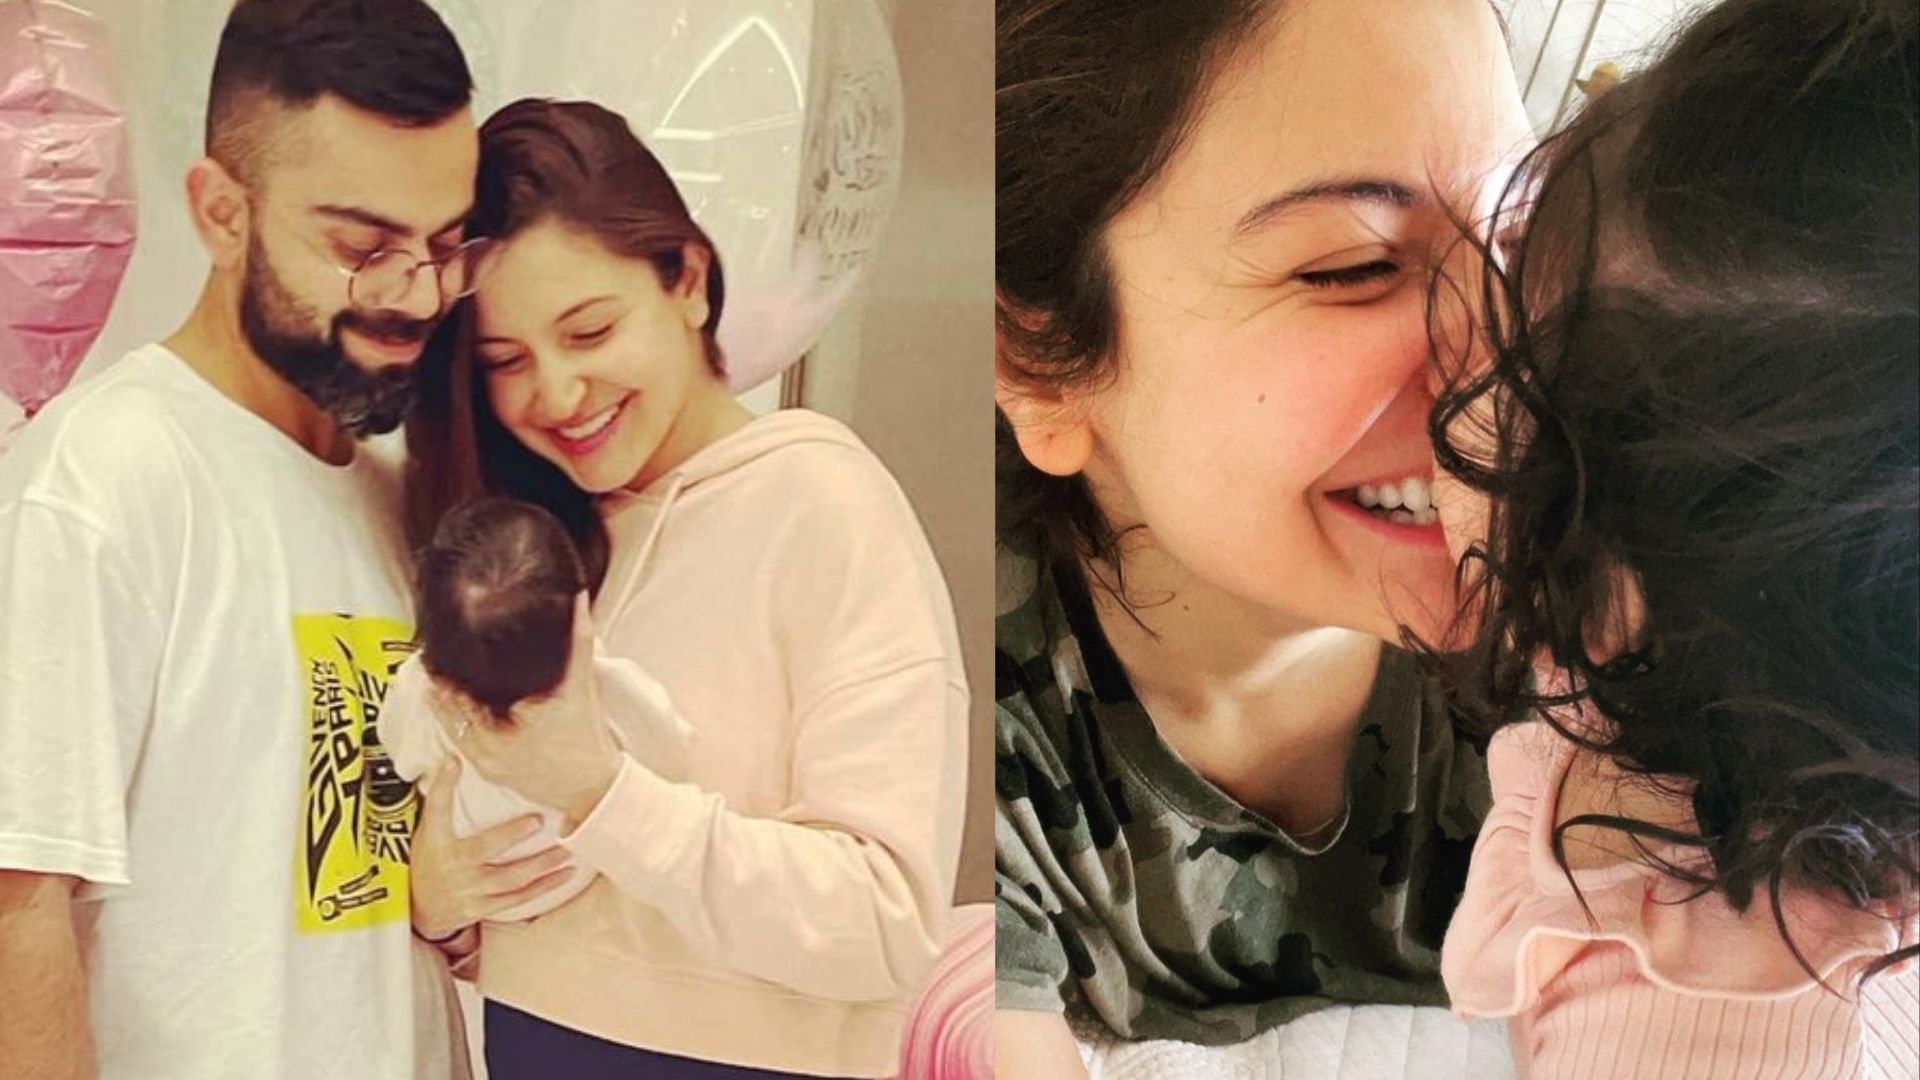 Anushka Sharma Drops A Super Adorable Picture Of Her 'Whole Heart' On Insta And It's The Cutest Thing On The Internet- Can Our Day Get Any Better?